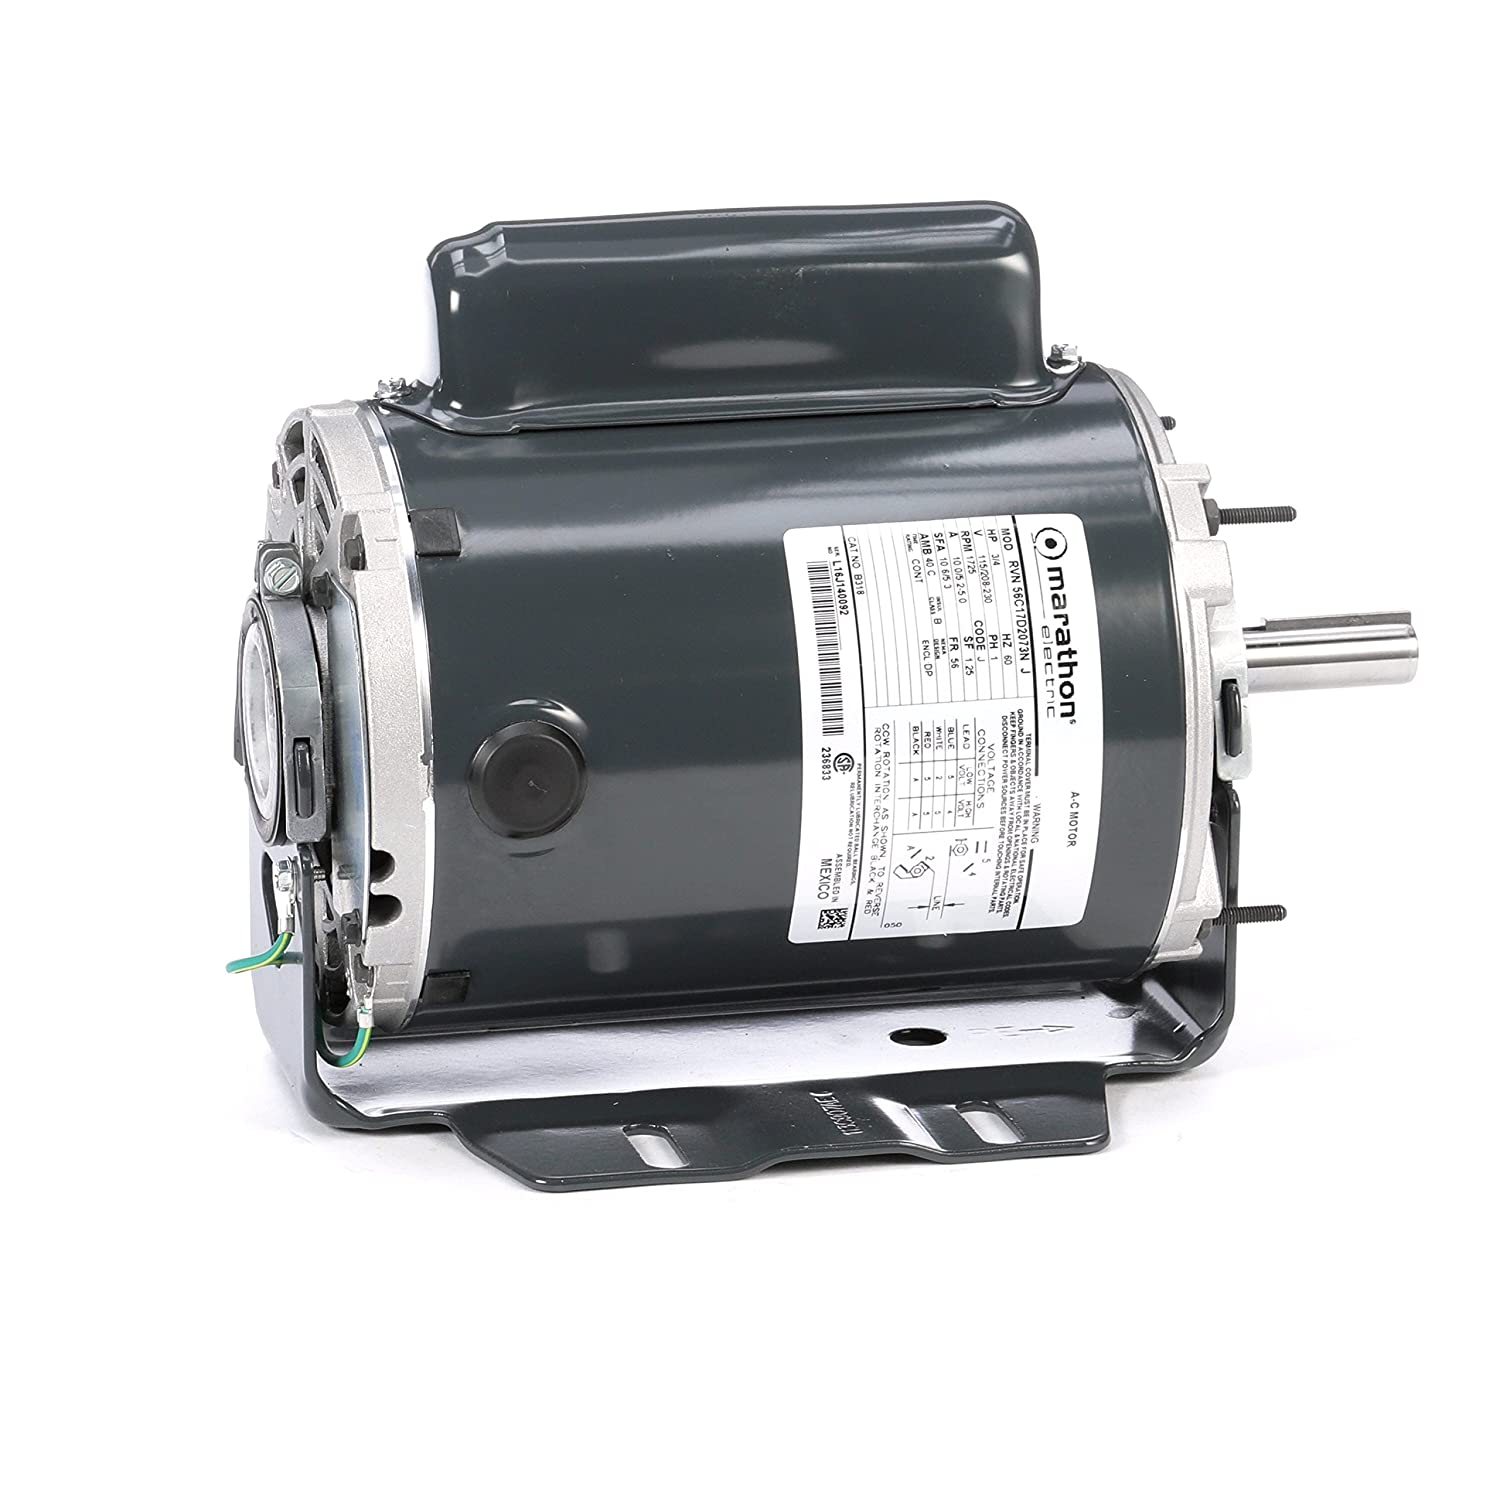 Marathon B318 Fan and Blower Motor, Single/Split Phase, Protection - None, 3/4 hp, 1725 rpm, 115/208-230V, 10.0/5.2-5.0 amp Marathon Electric MB318 04102395